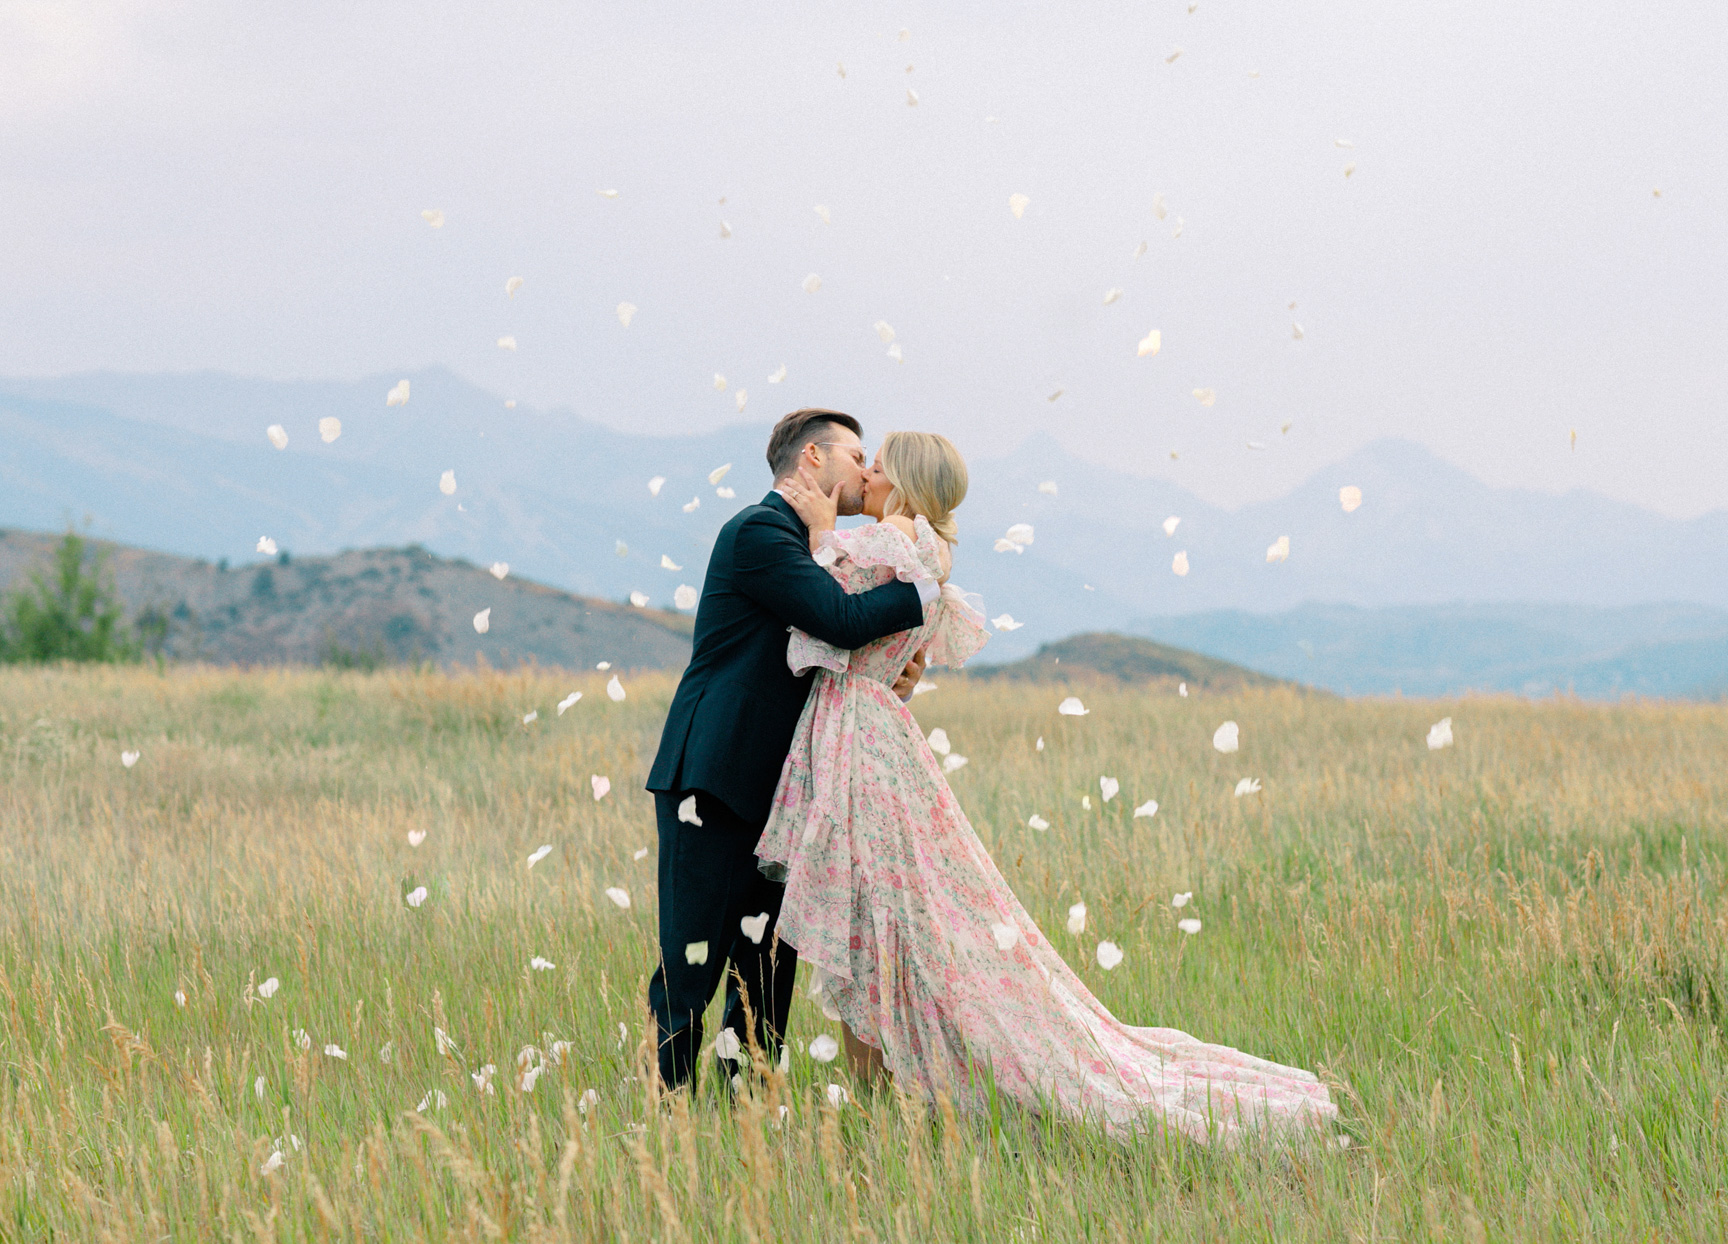 bride and groom kissing in field with flower petals